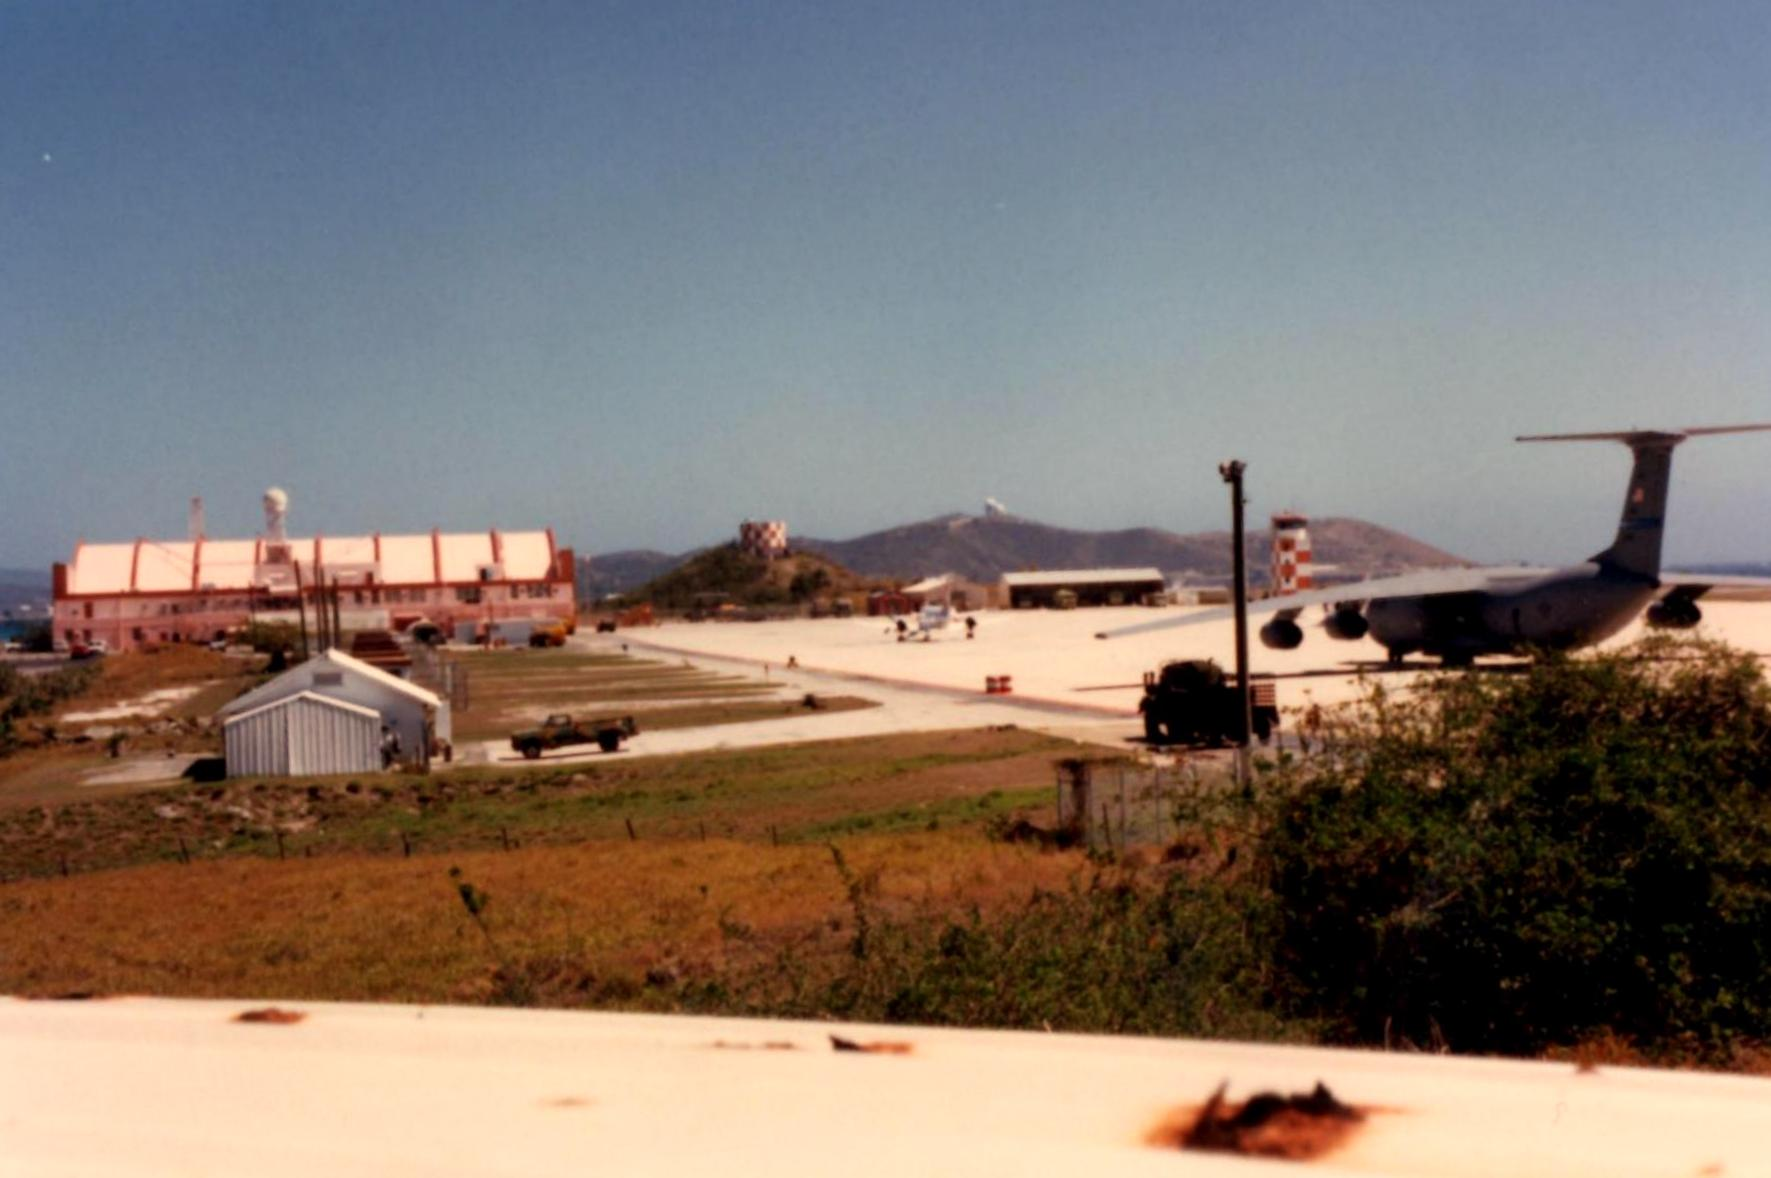 This is the airstrip at U.S. Naval Station Guantanamo Bay, Cuba taken by the author in 1997.